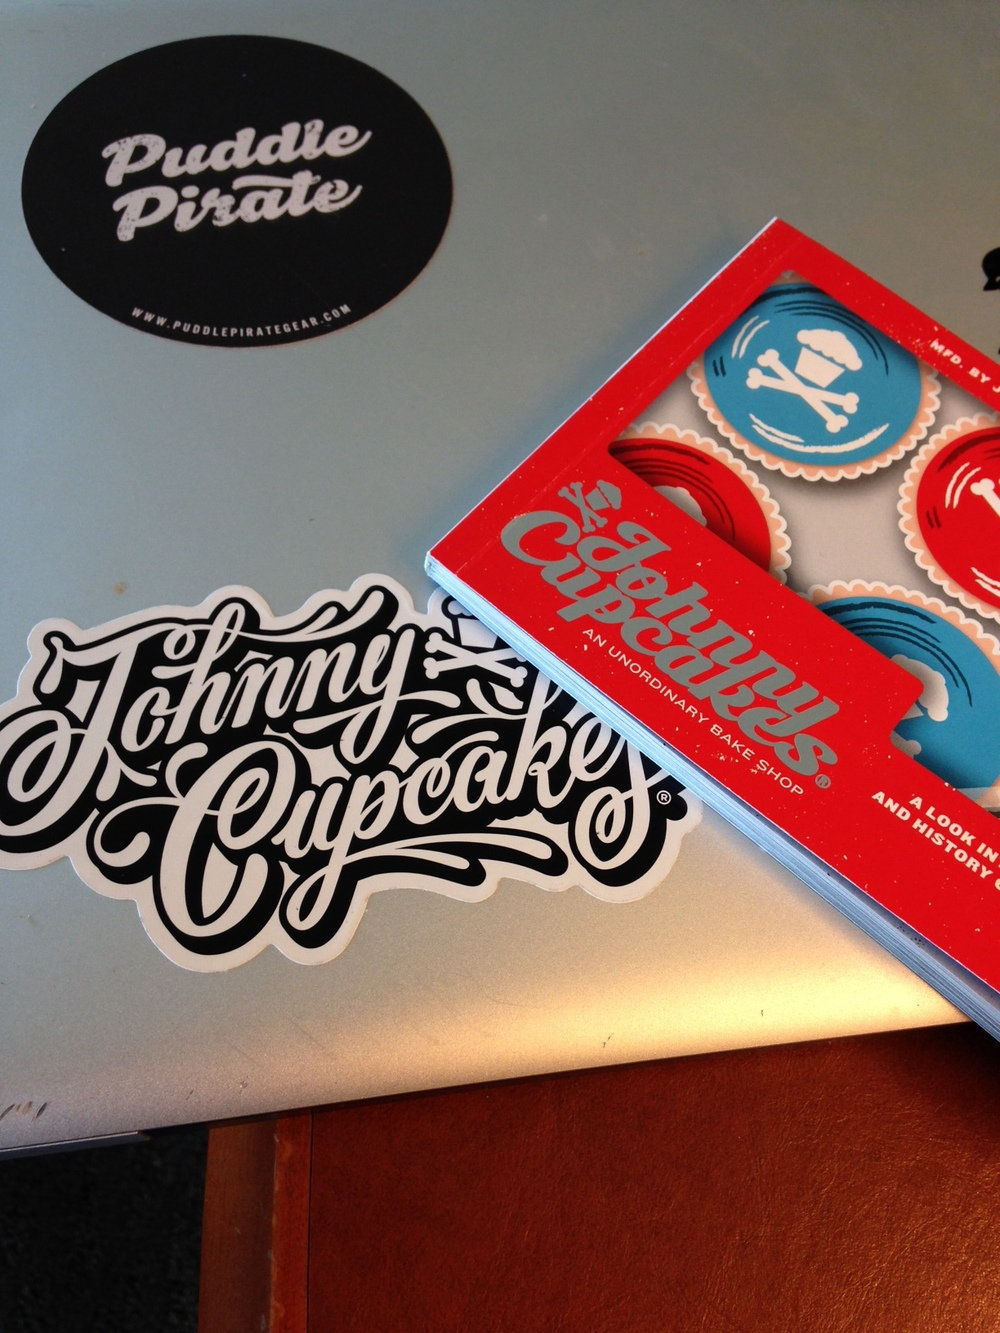 Nabbed some Johnny Cupcake swag... with a side of shameless self promotion.